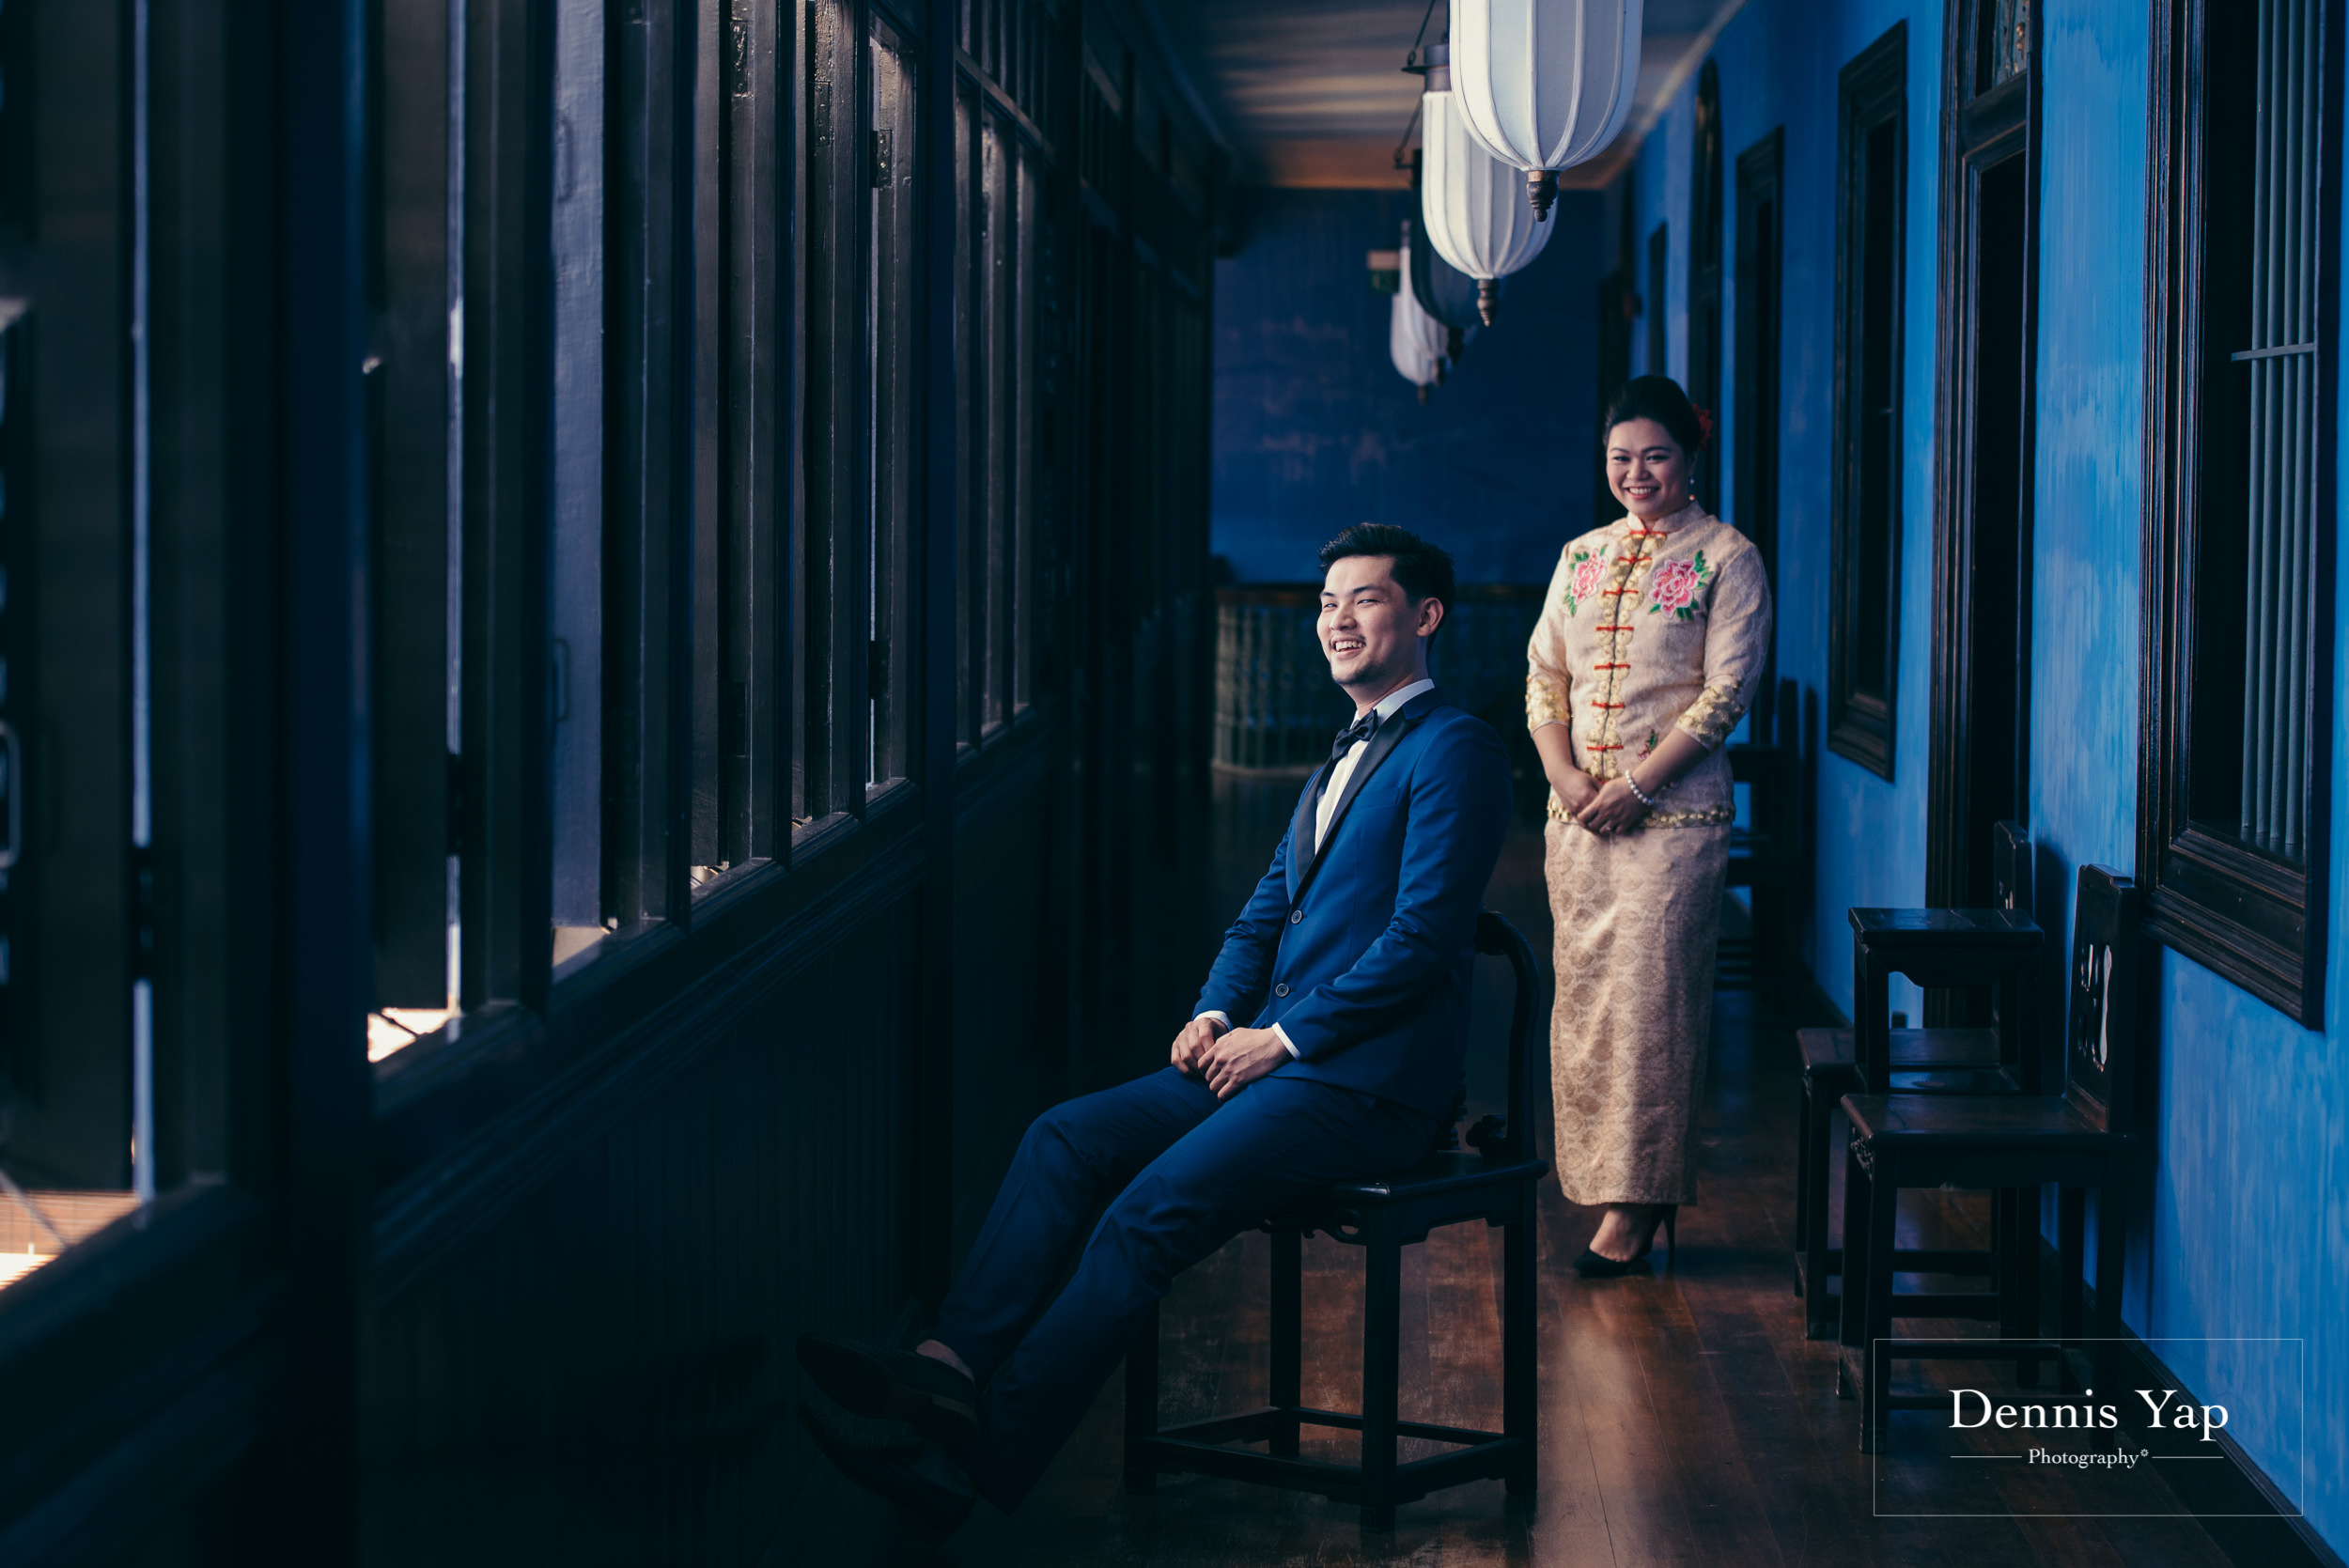 firdaus khim prewedding blue mansion penang dennis yap photography beloved-4.jpg